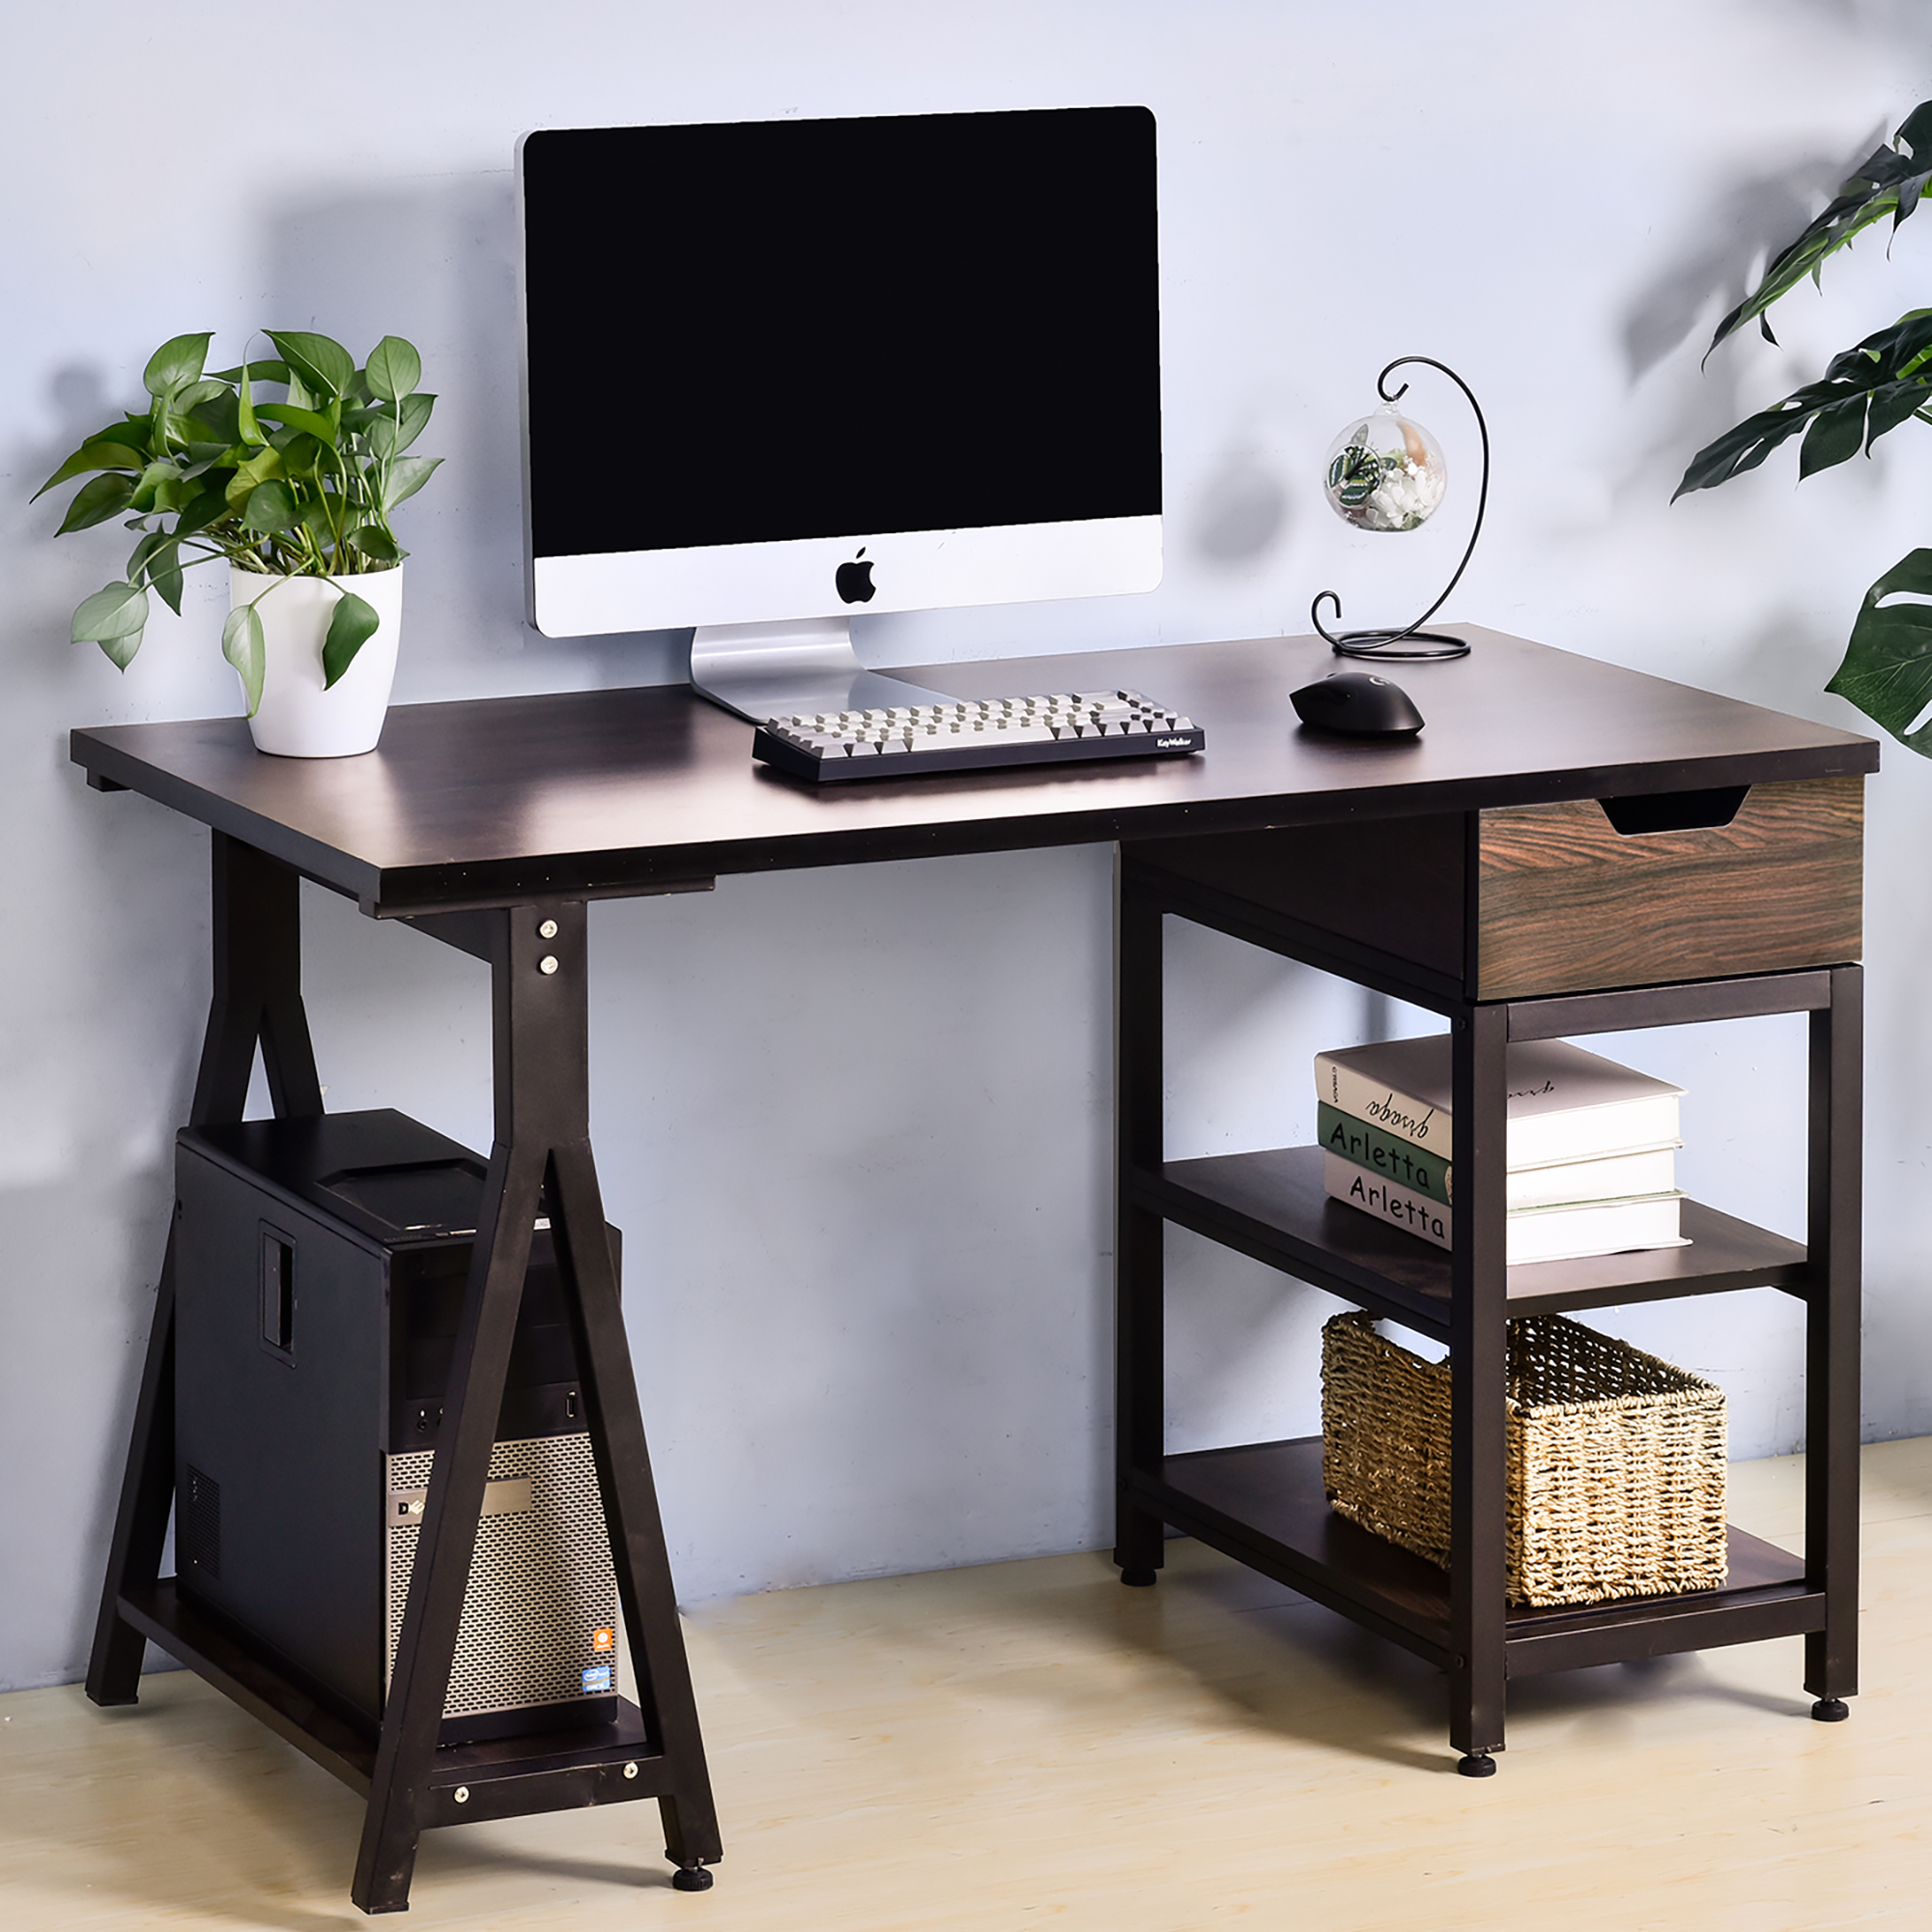 Tribesigns Computer Desk With Drawer And Bookshelf Home Desk Suitable For Home, Study, Office